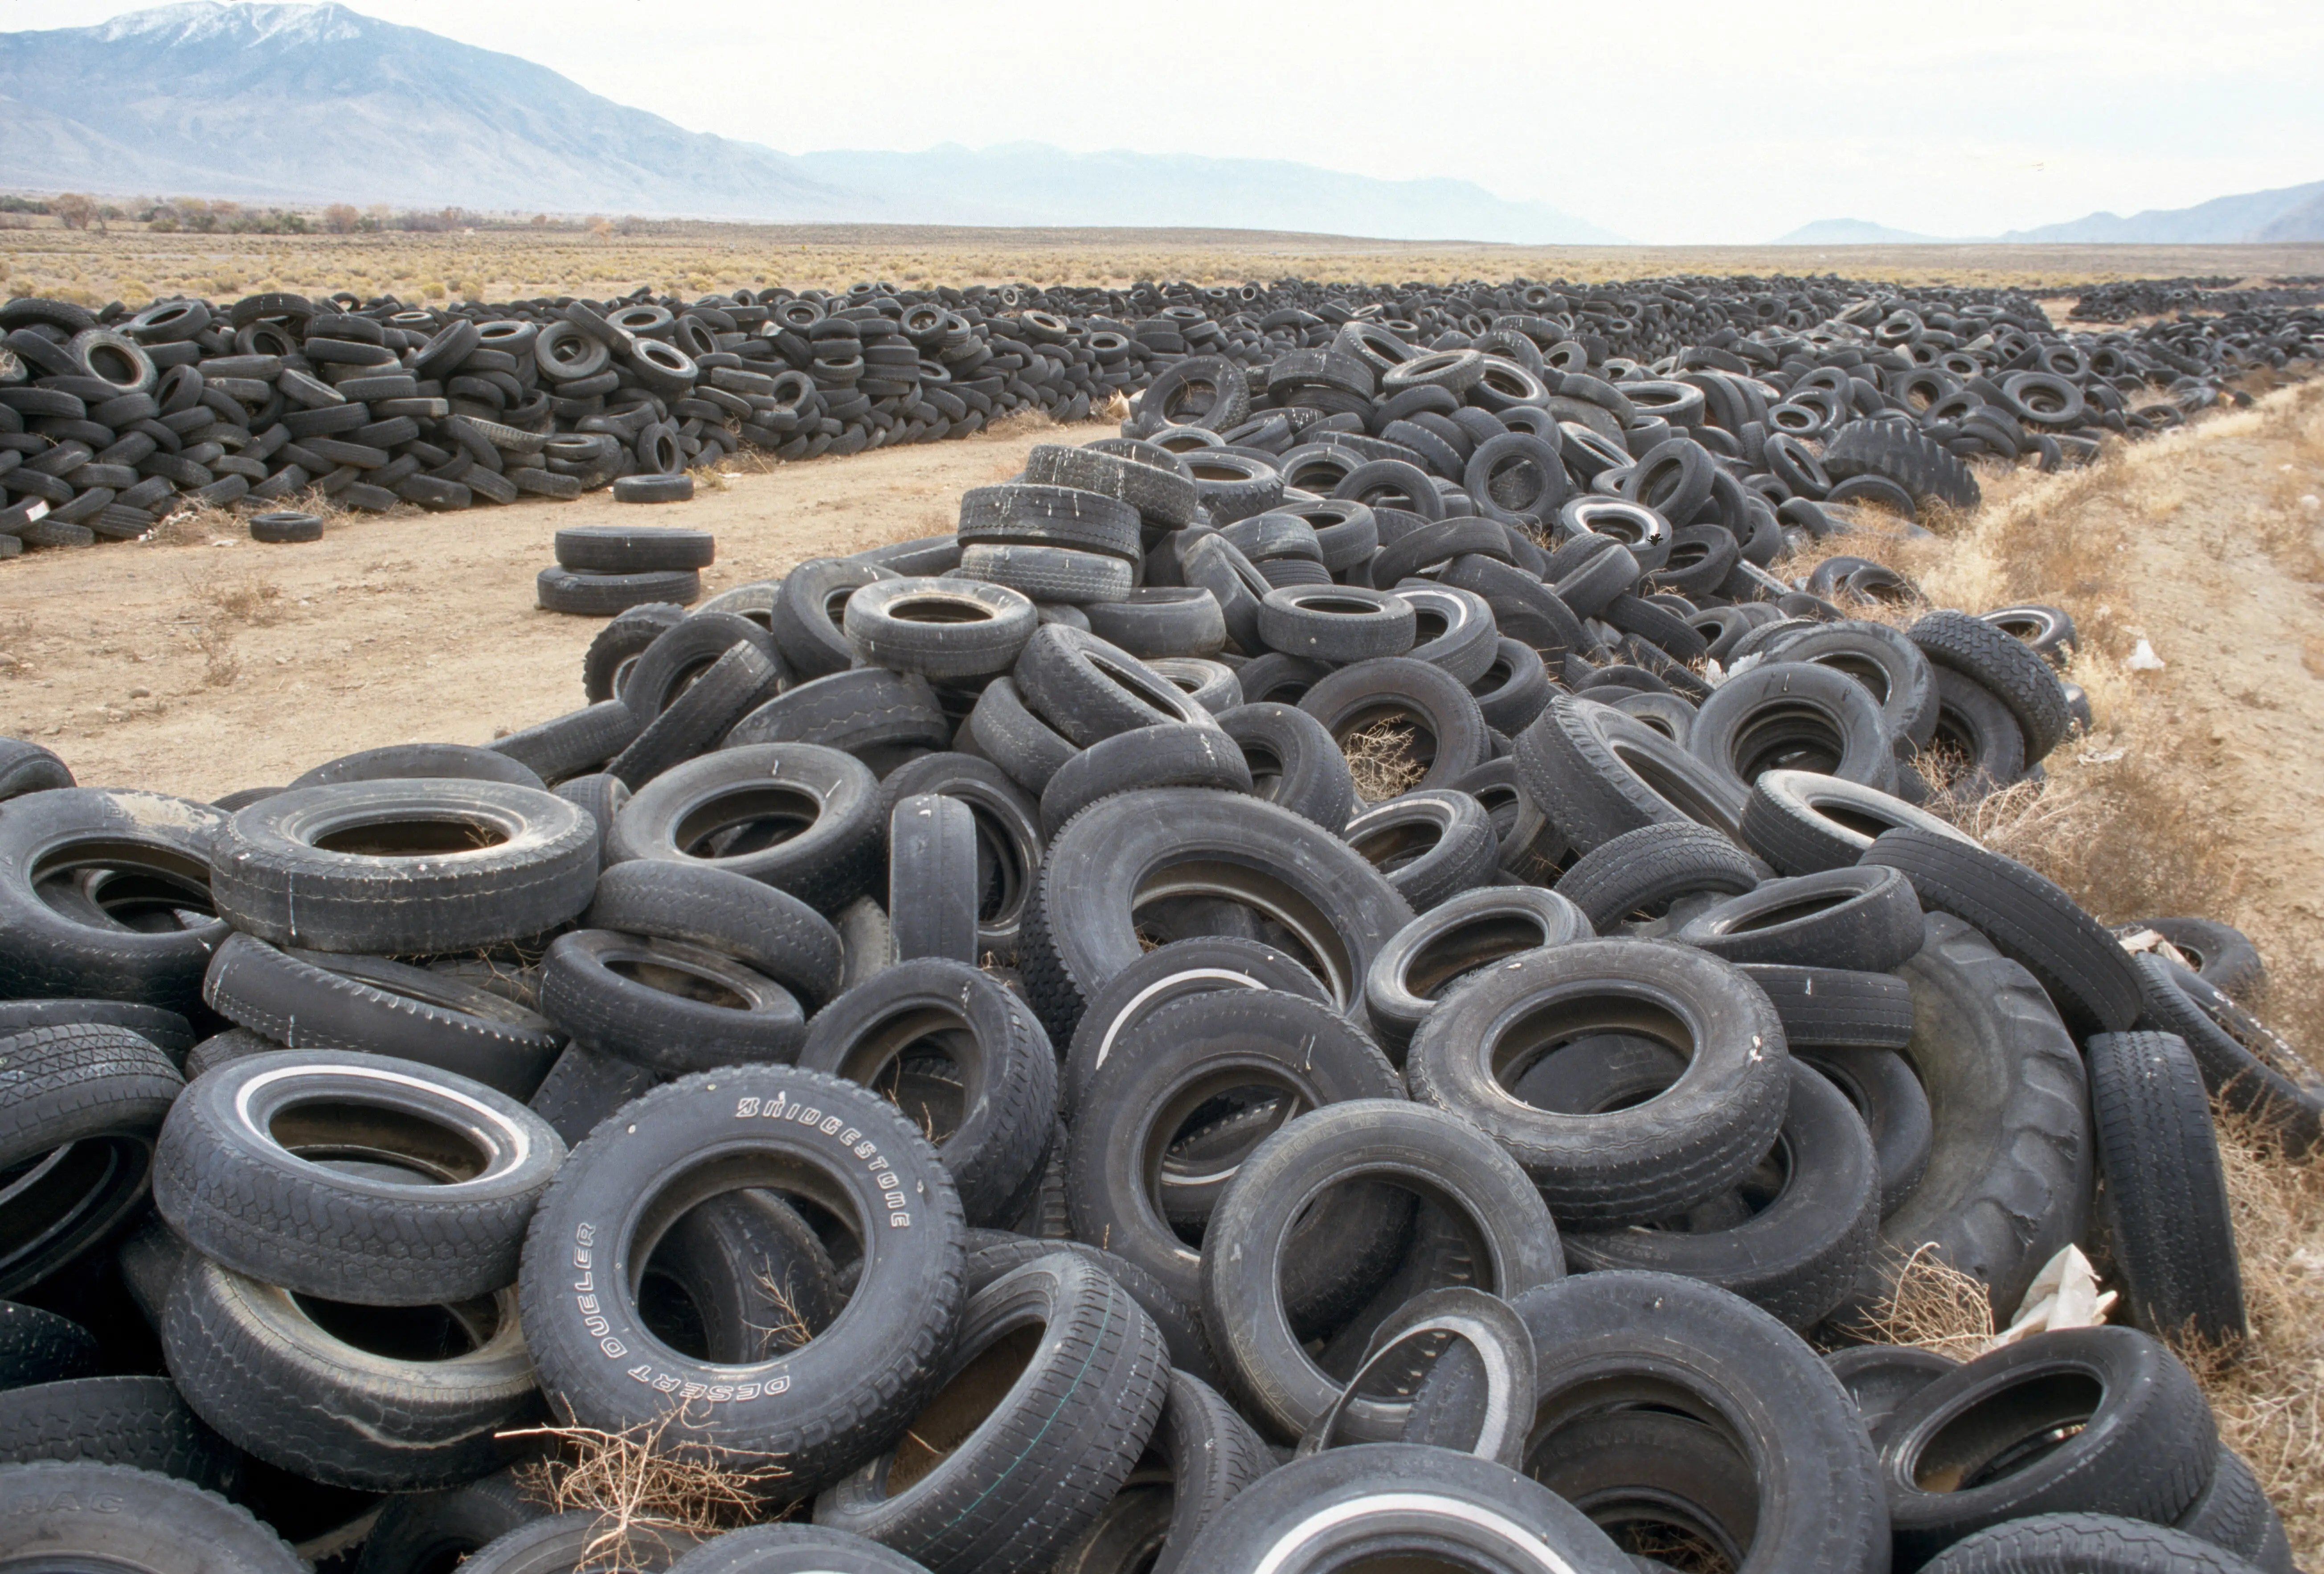 The end of the road for these tires is a desert dumping ground in Nevada. The land used to be a recreation area until around 2006, when it became a place to unload all sorts of items that people no longer needed.